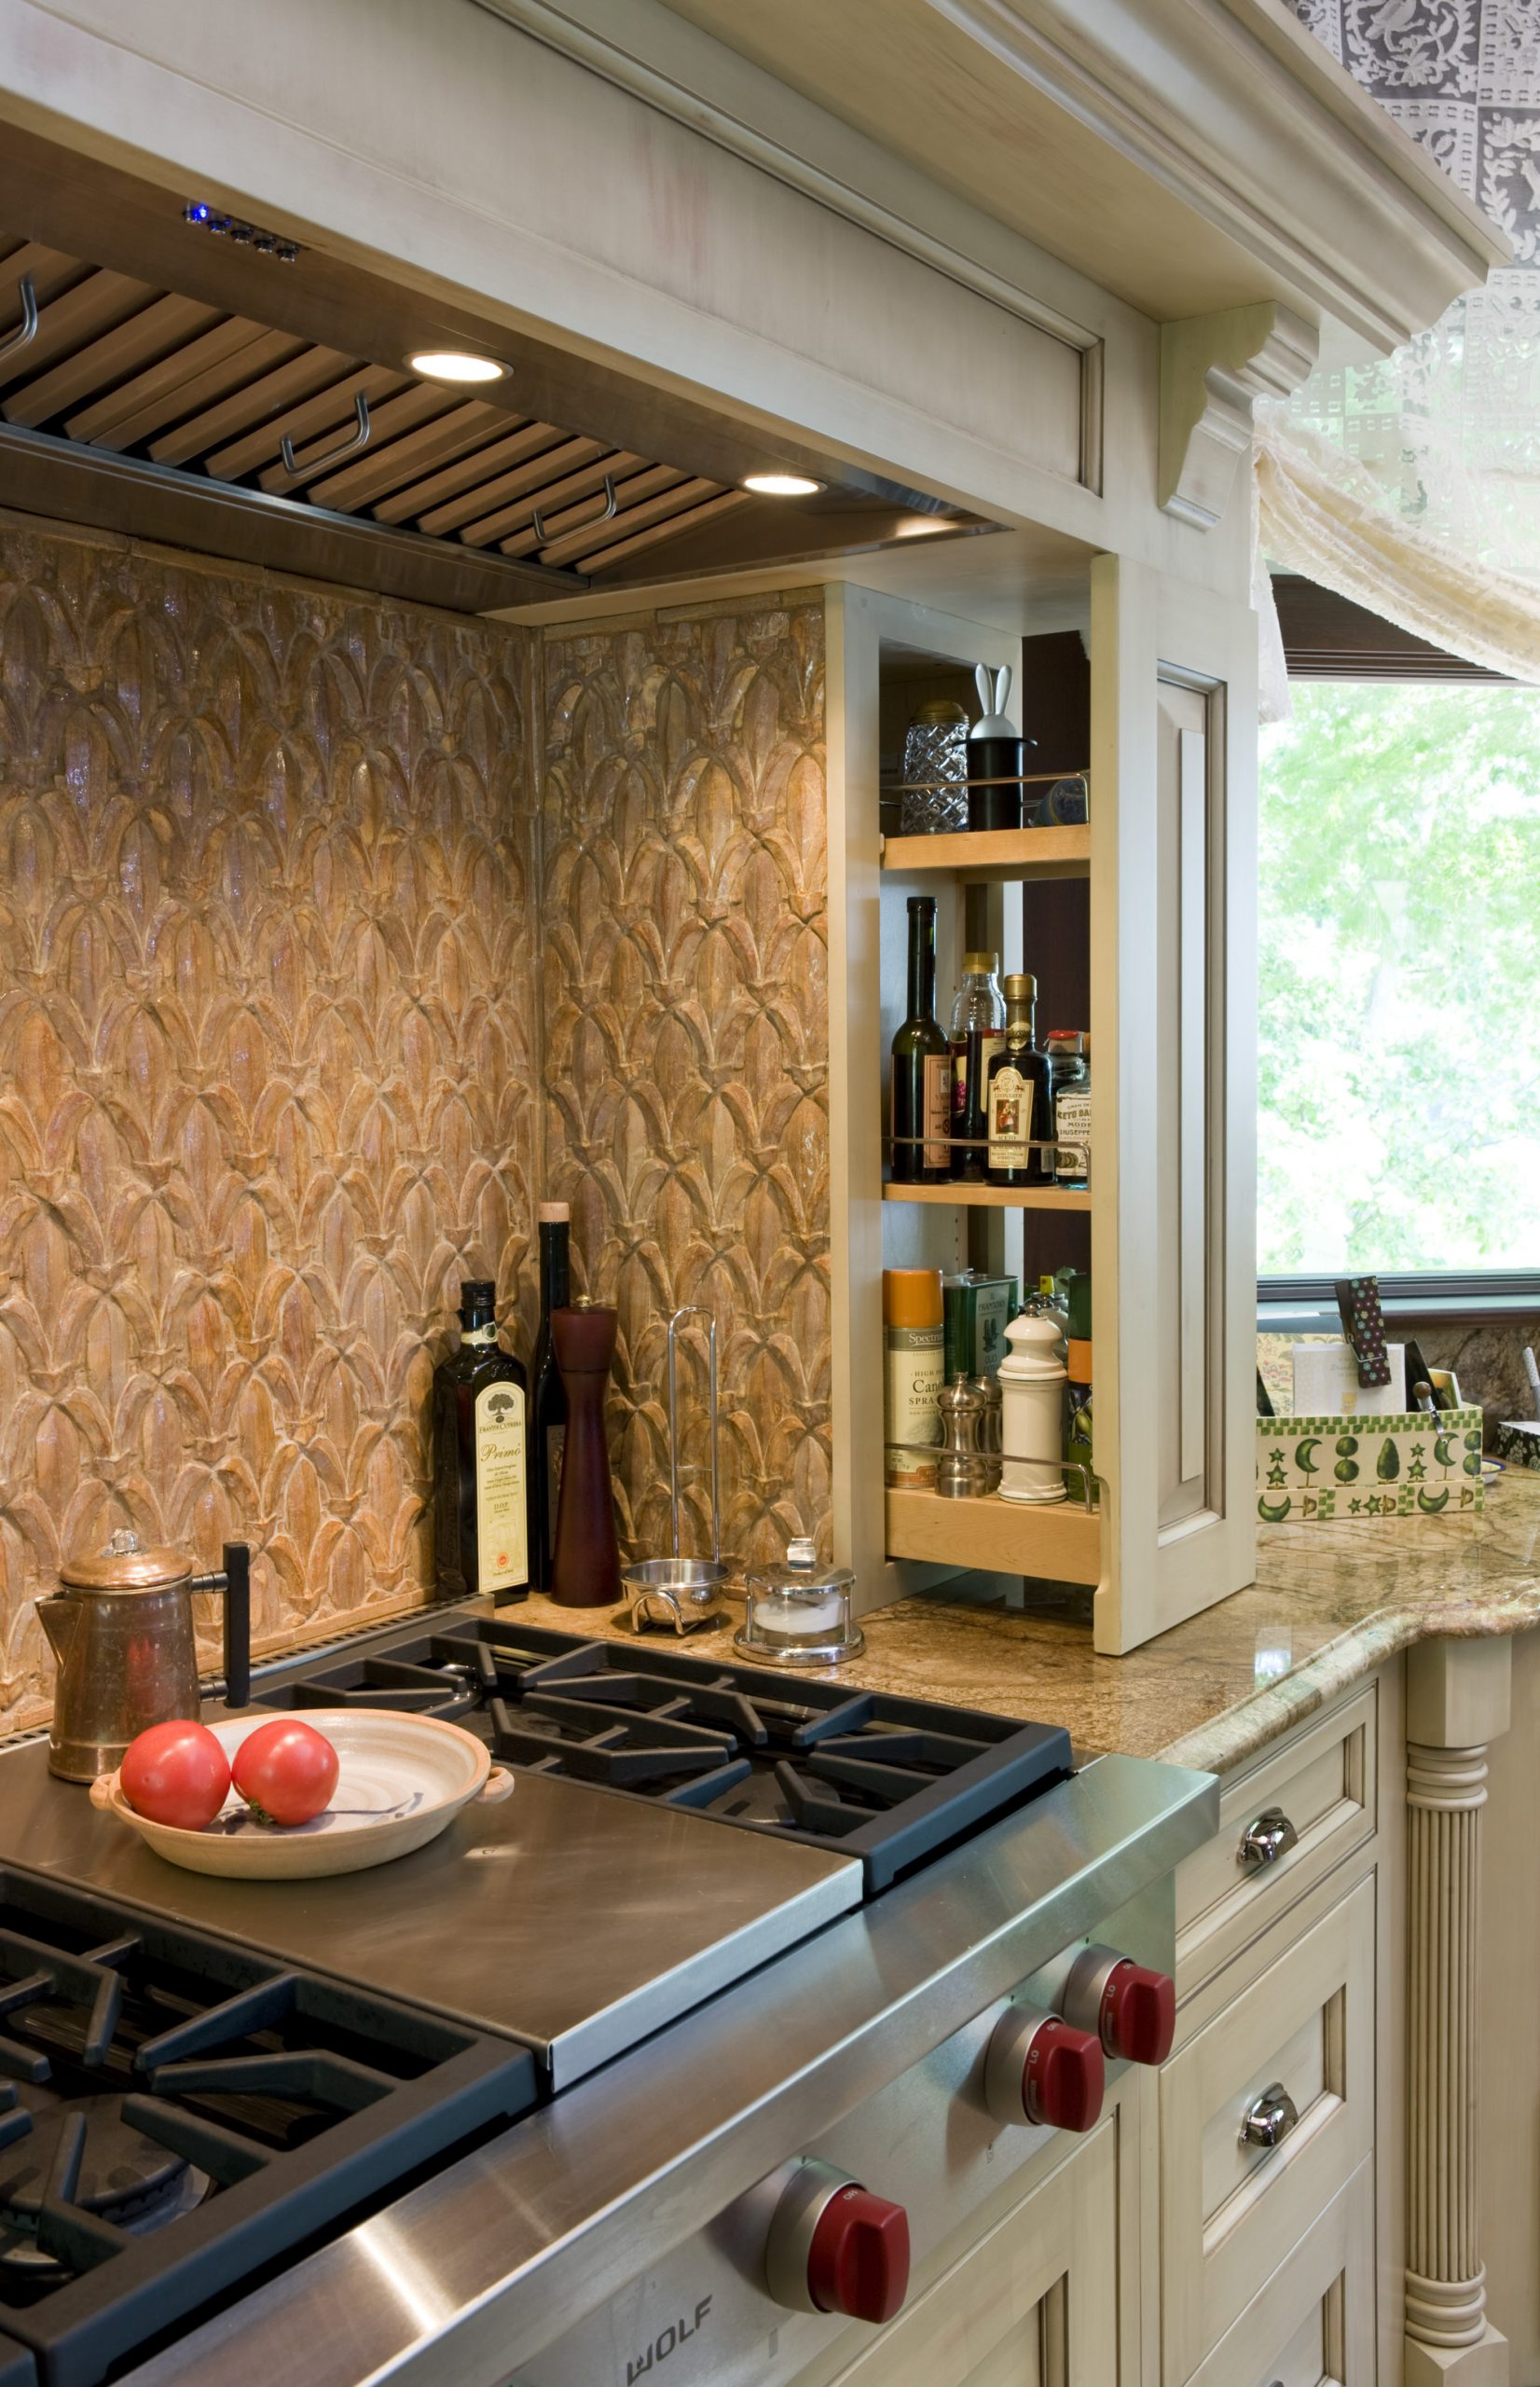 Manganaro, A&M- Kitchen-Greenfield- Traditional- Stain- Range- Open Spice Rack